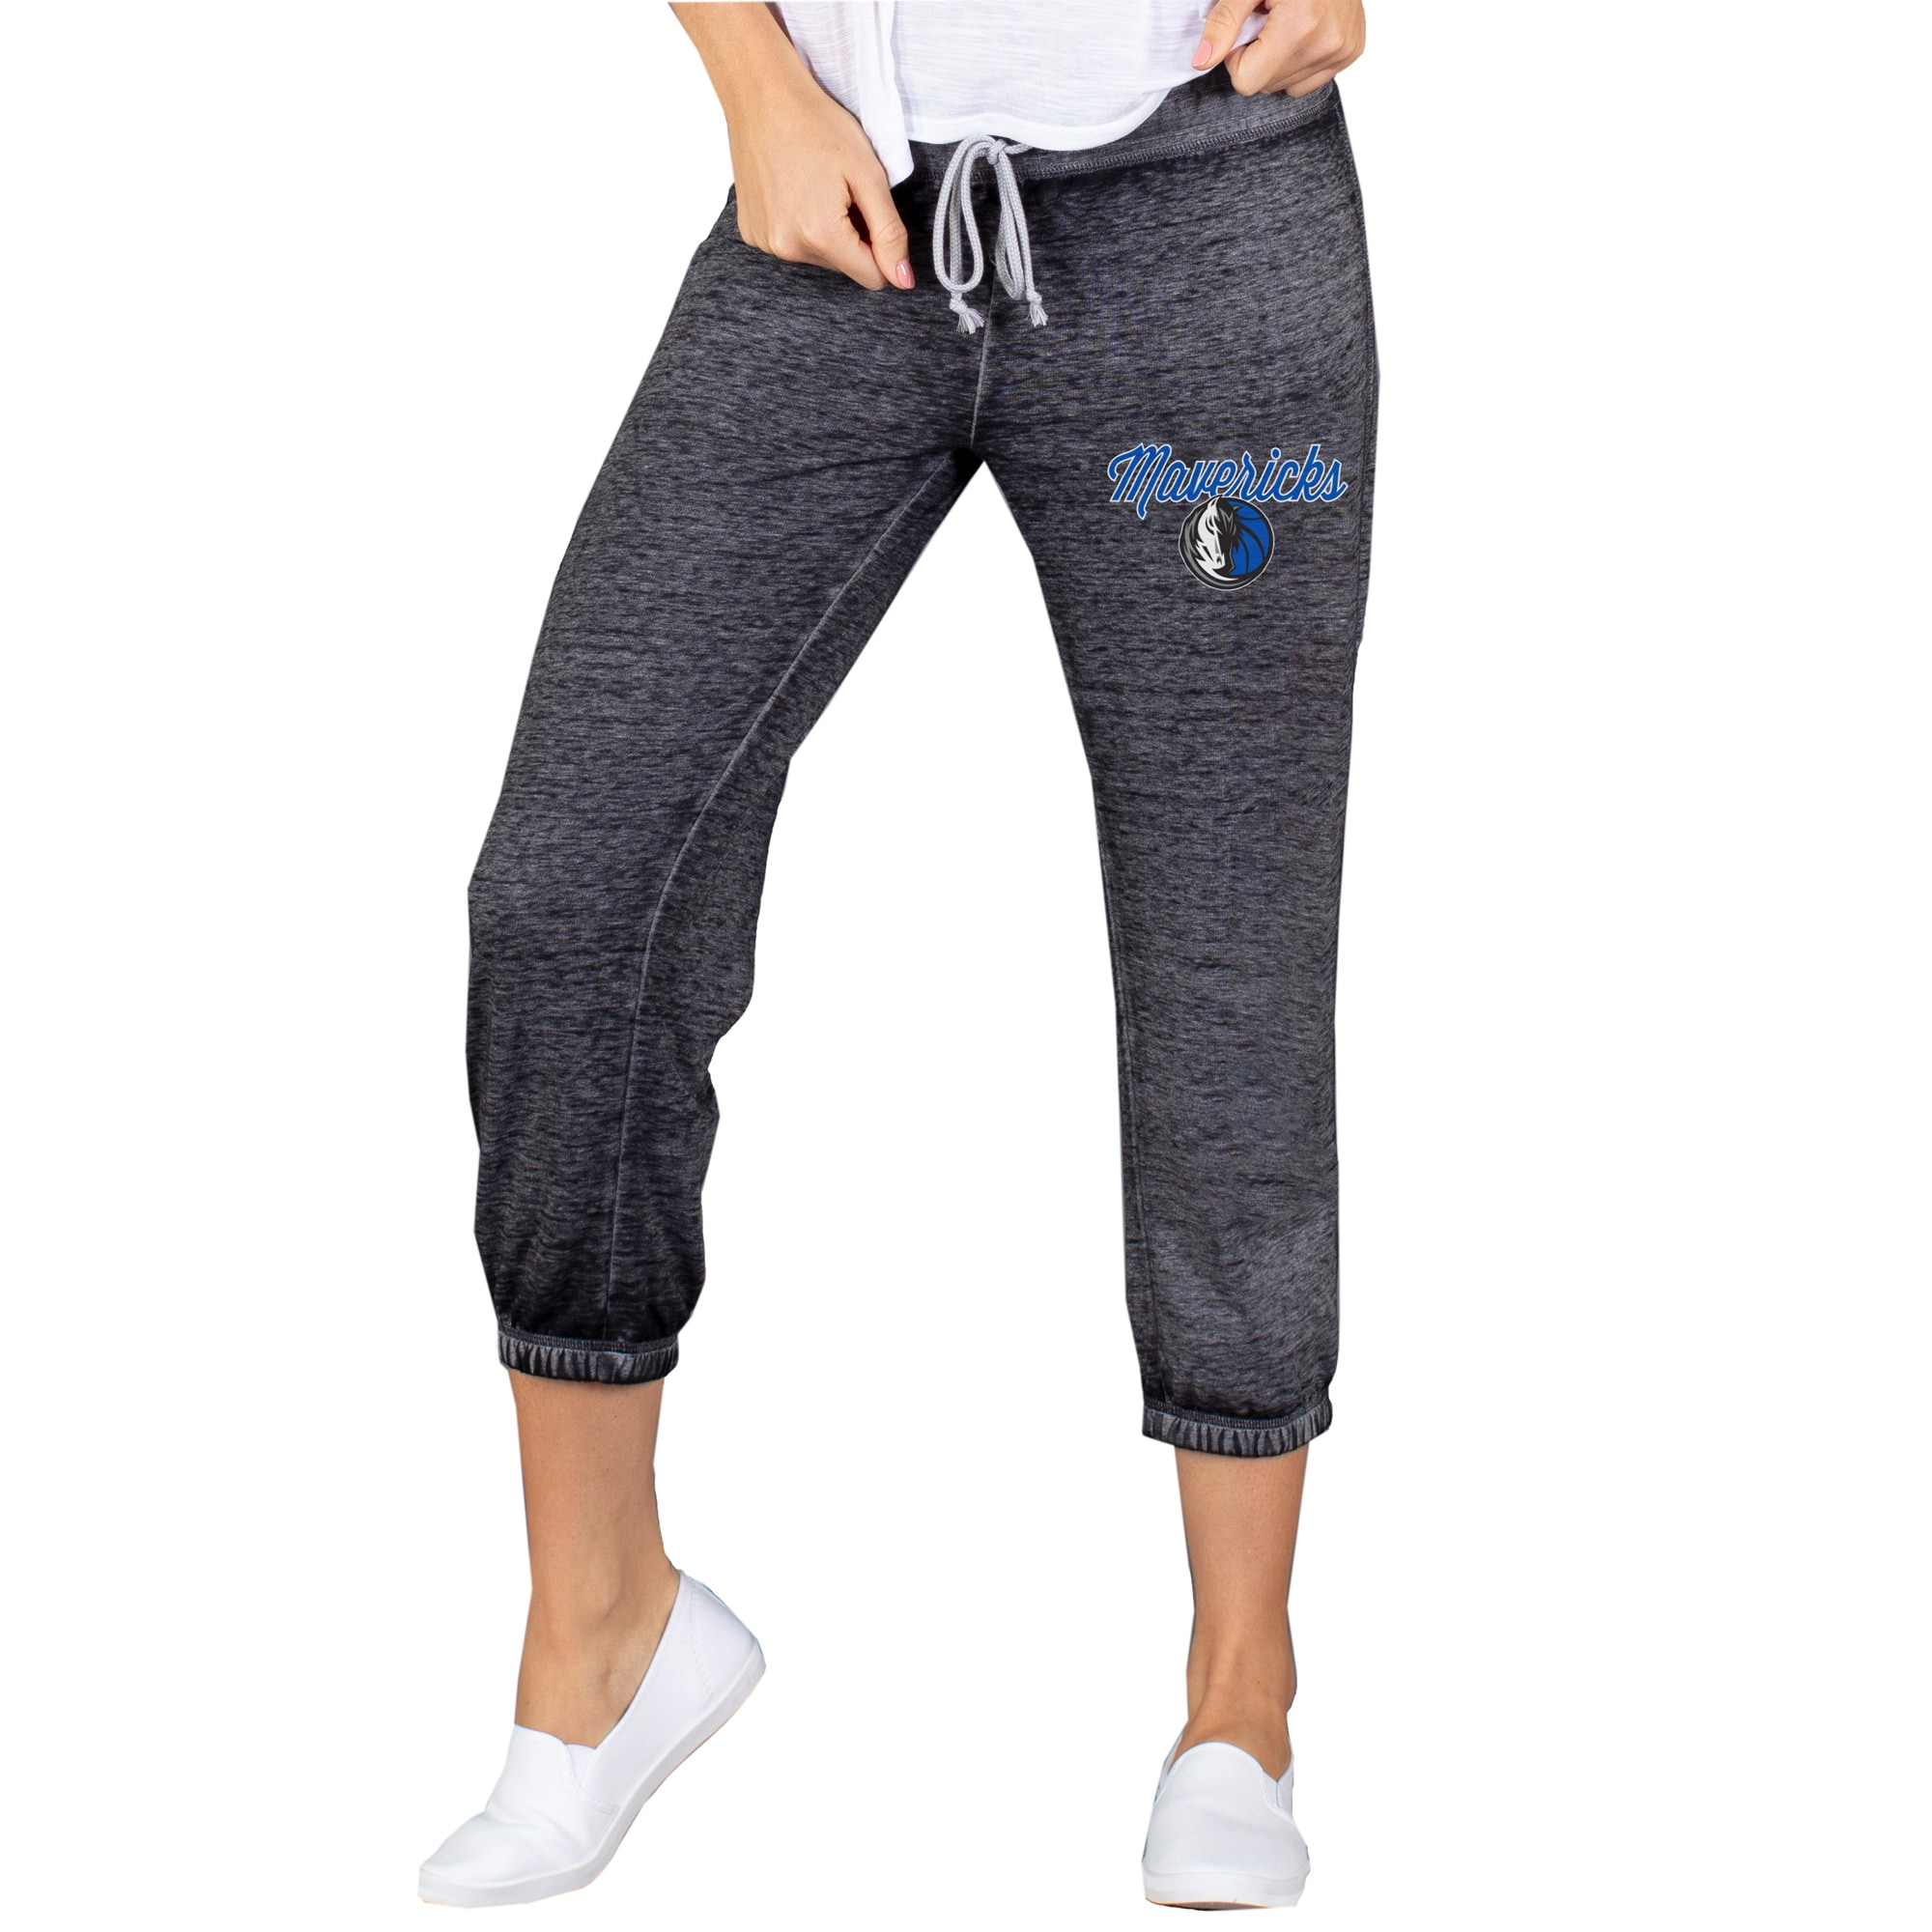 Dallas Mavericks Concepts Sport Women's Capri Knit Lounge Pants - Charcoal